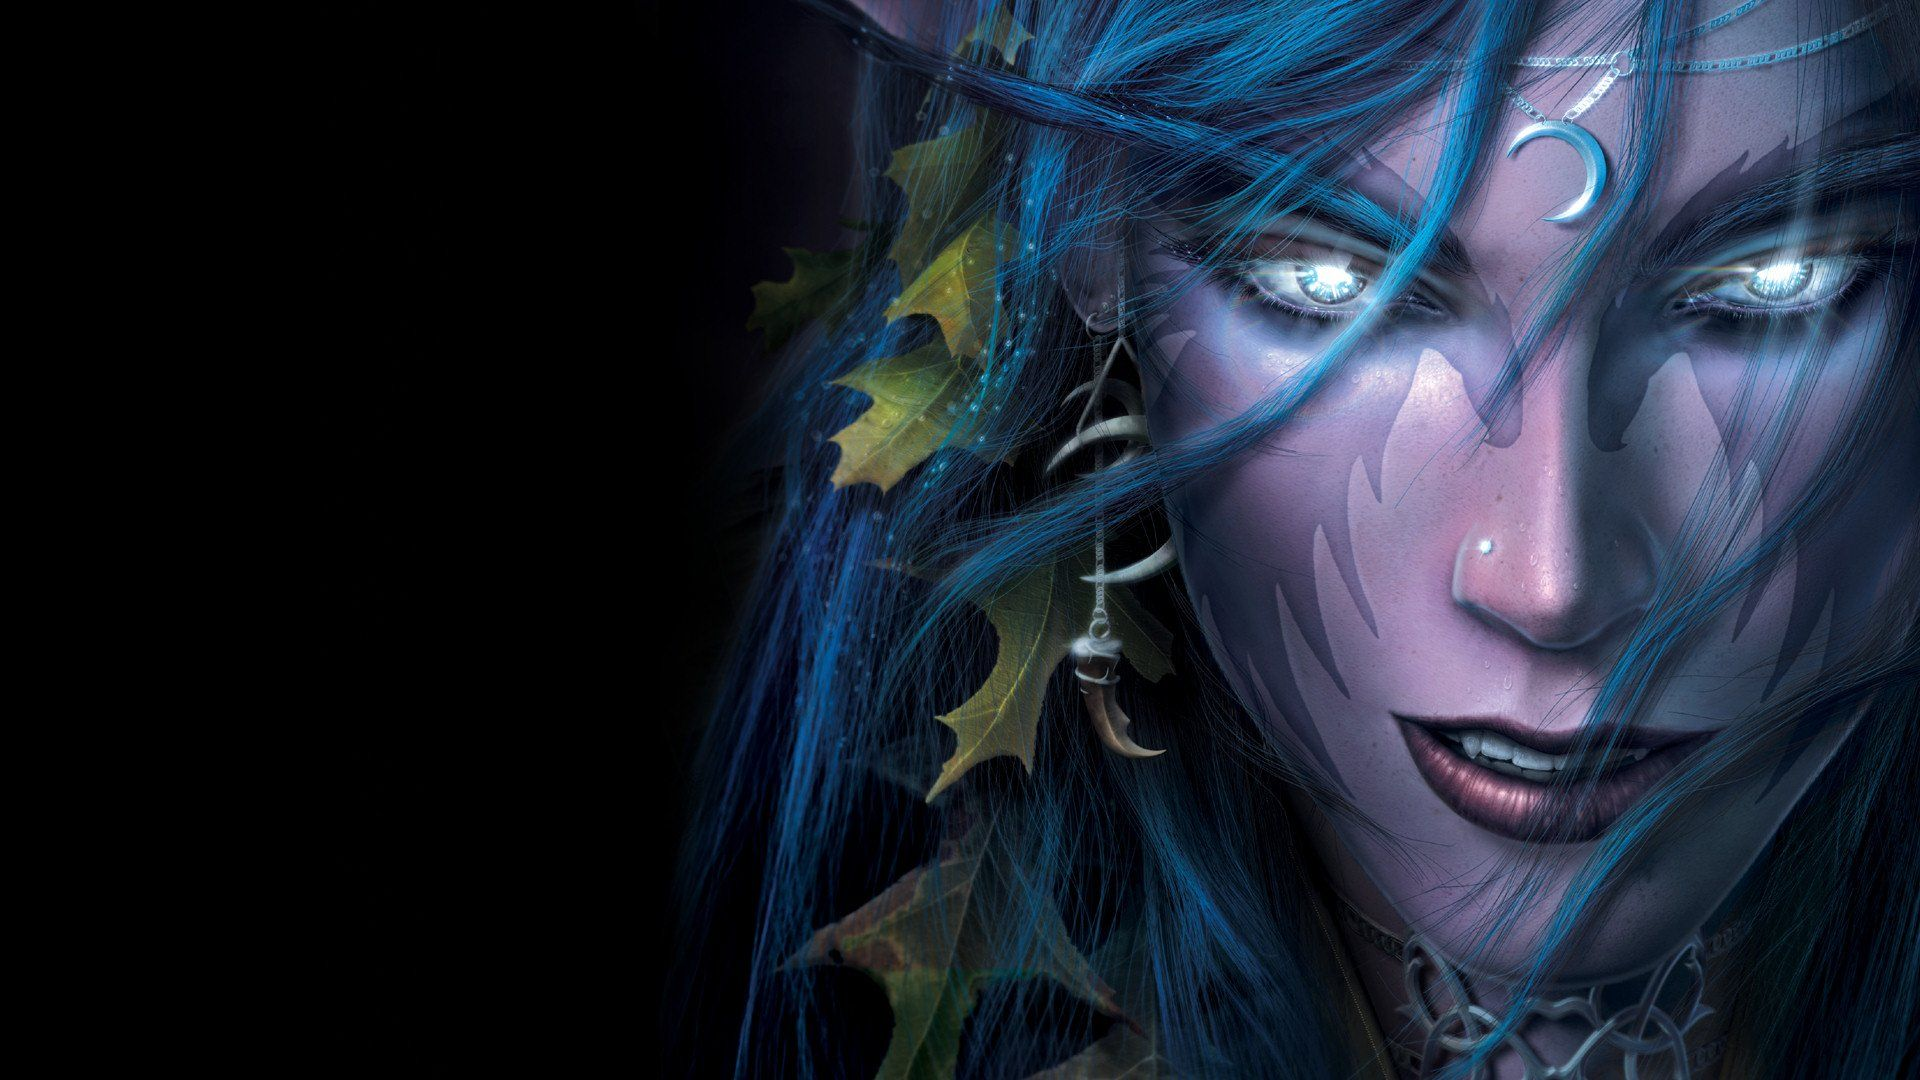 Warcraft Elf Wallpapers Top Free Warcraft Elf Backgrounds